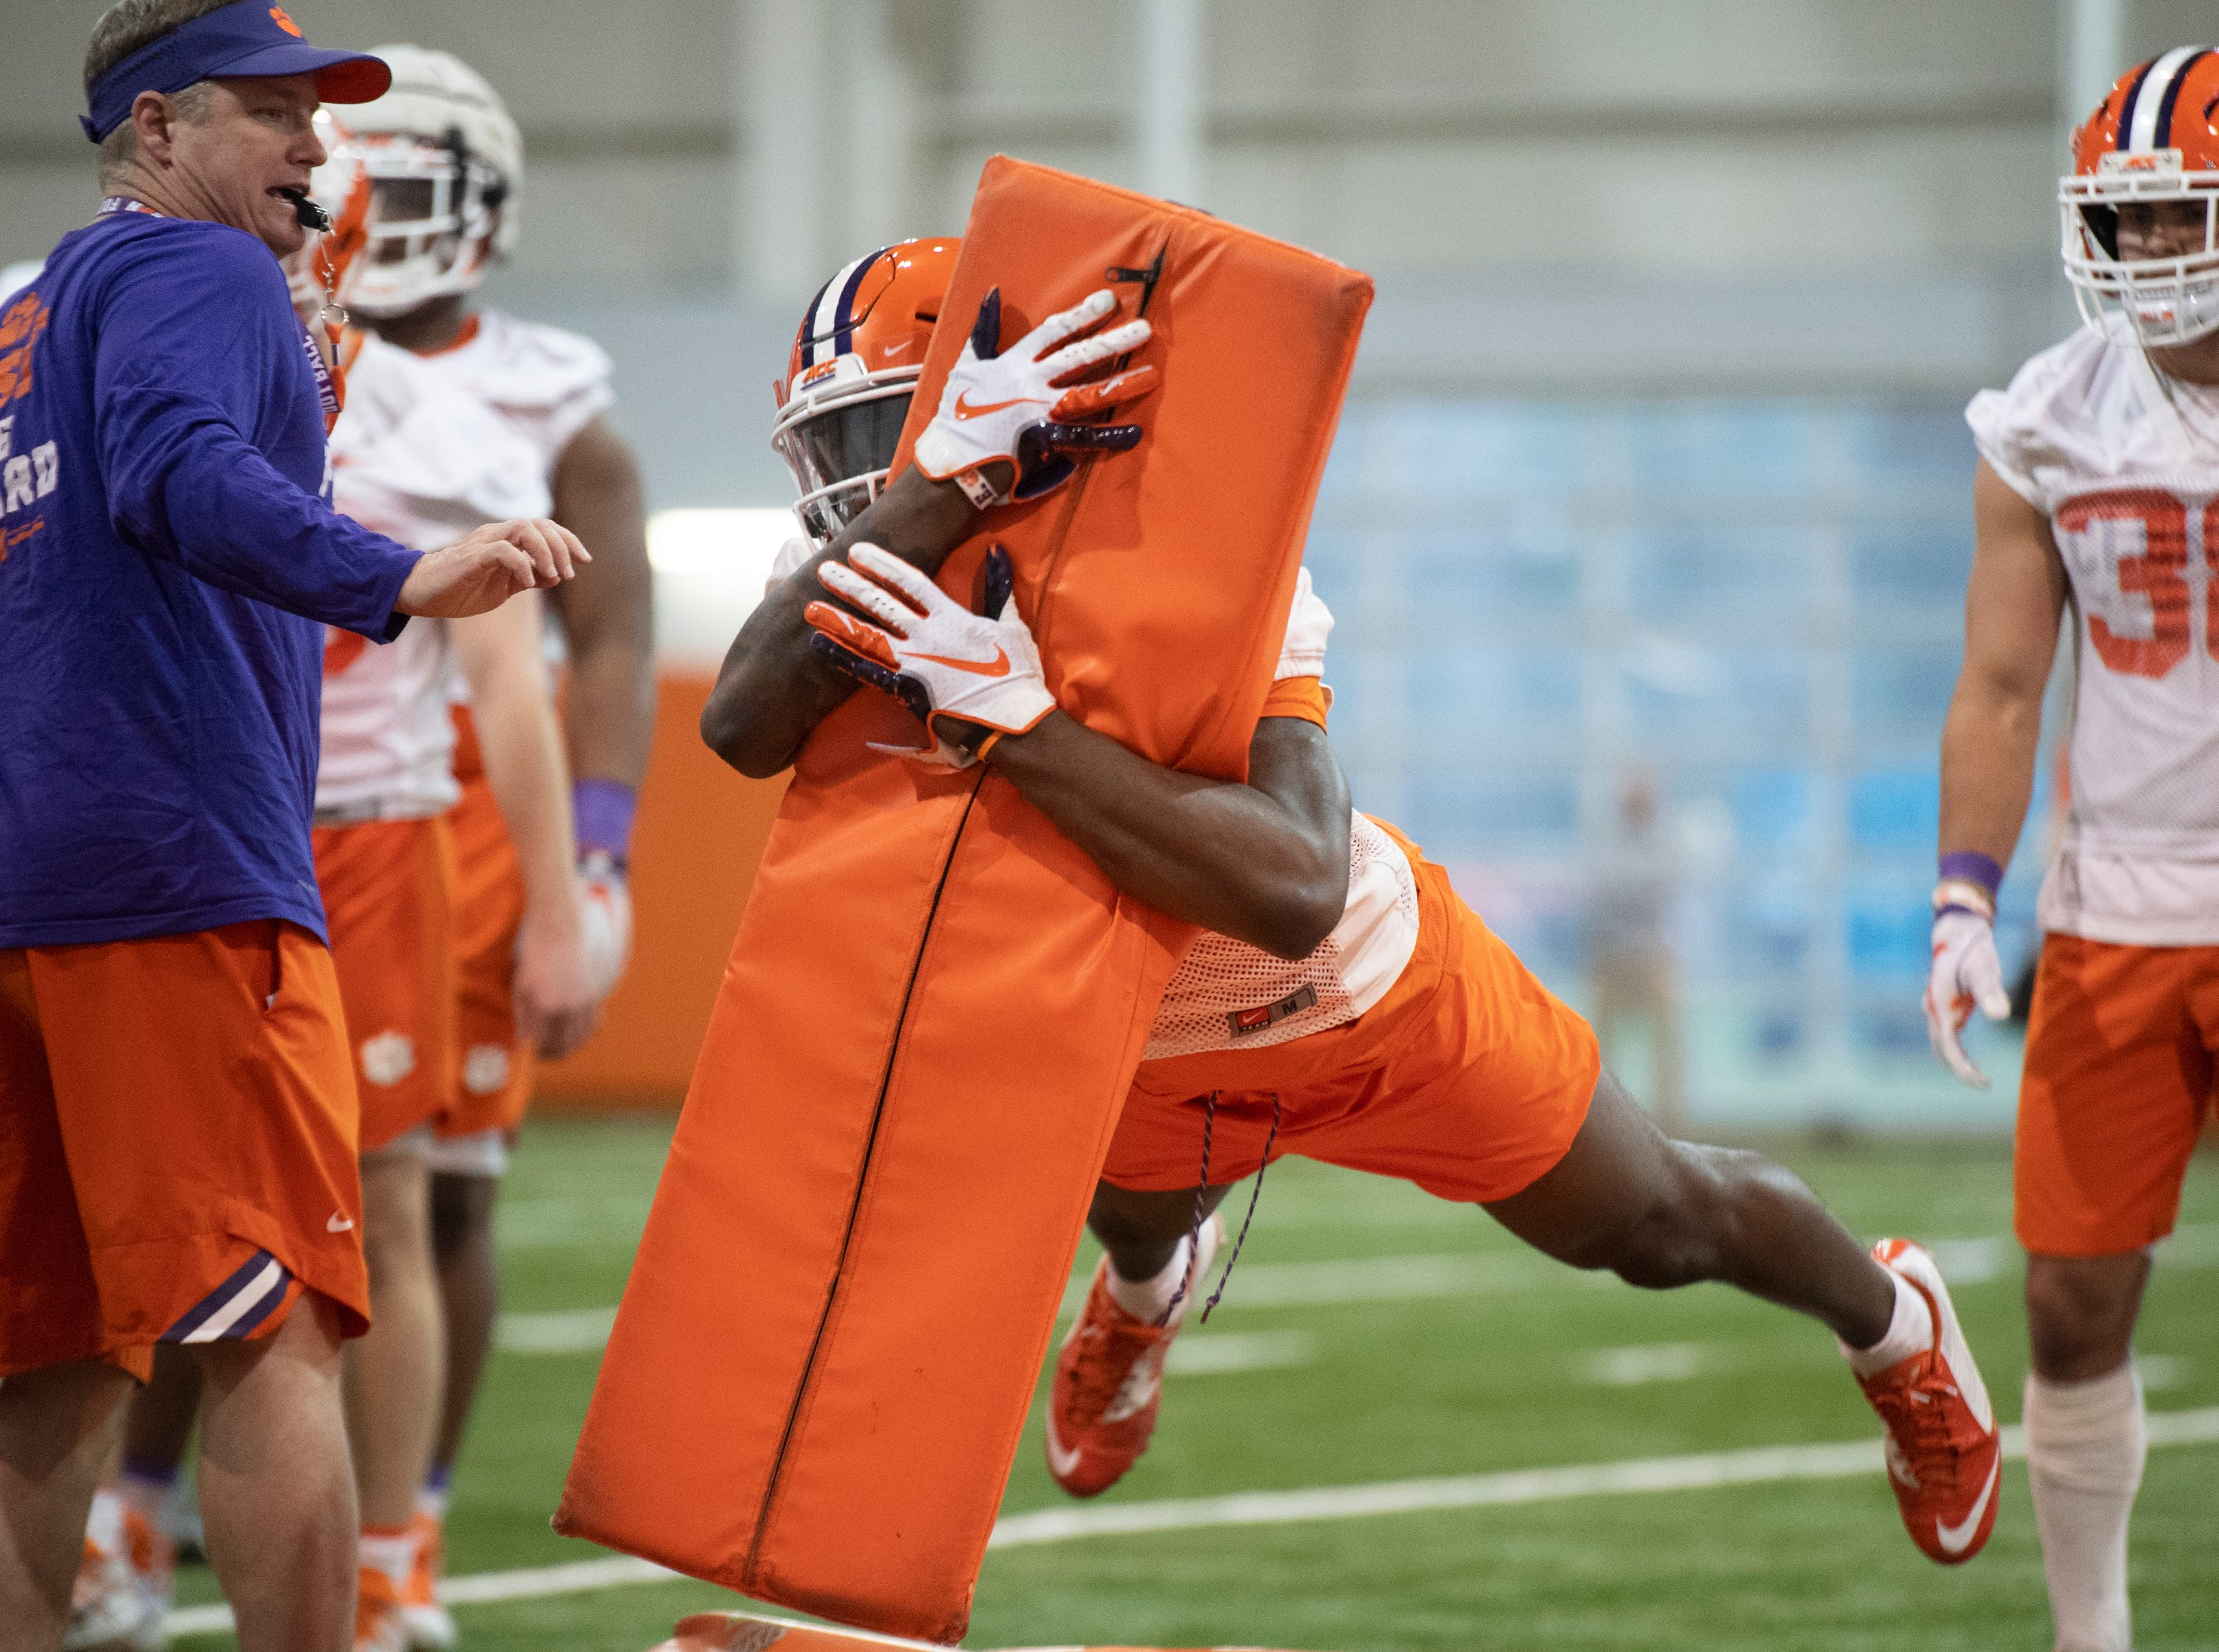 Clemson safety Denzel Johnson (14) practices at the Poe Indoor Football Facility Friday, Mar. 1, 2019.